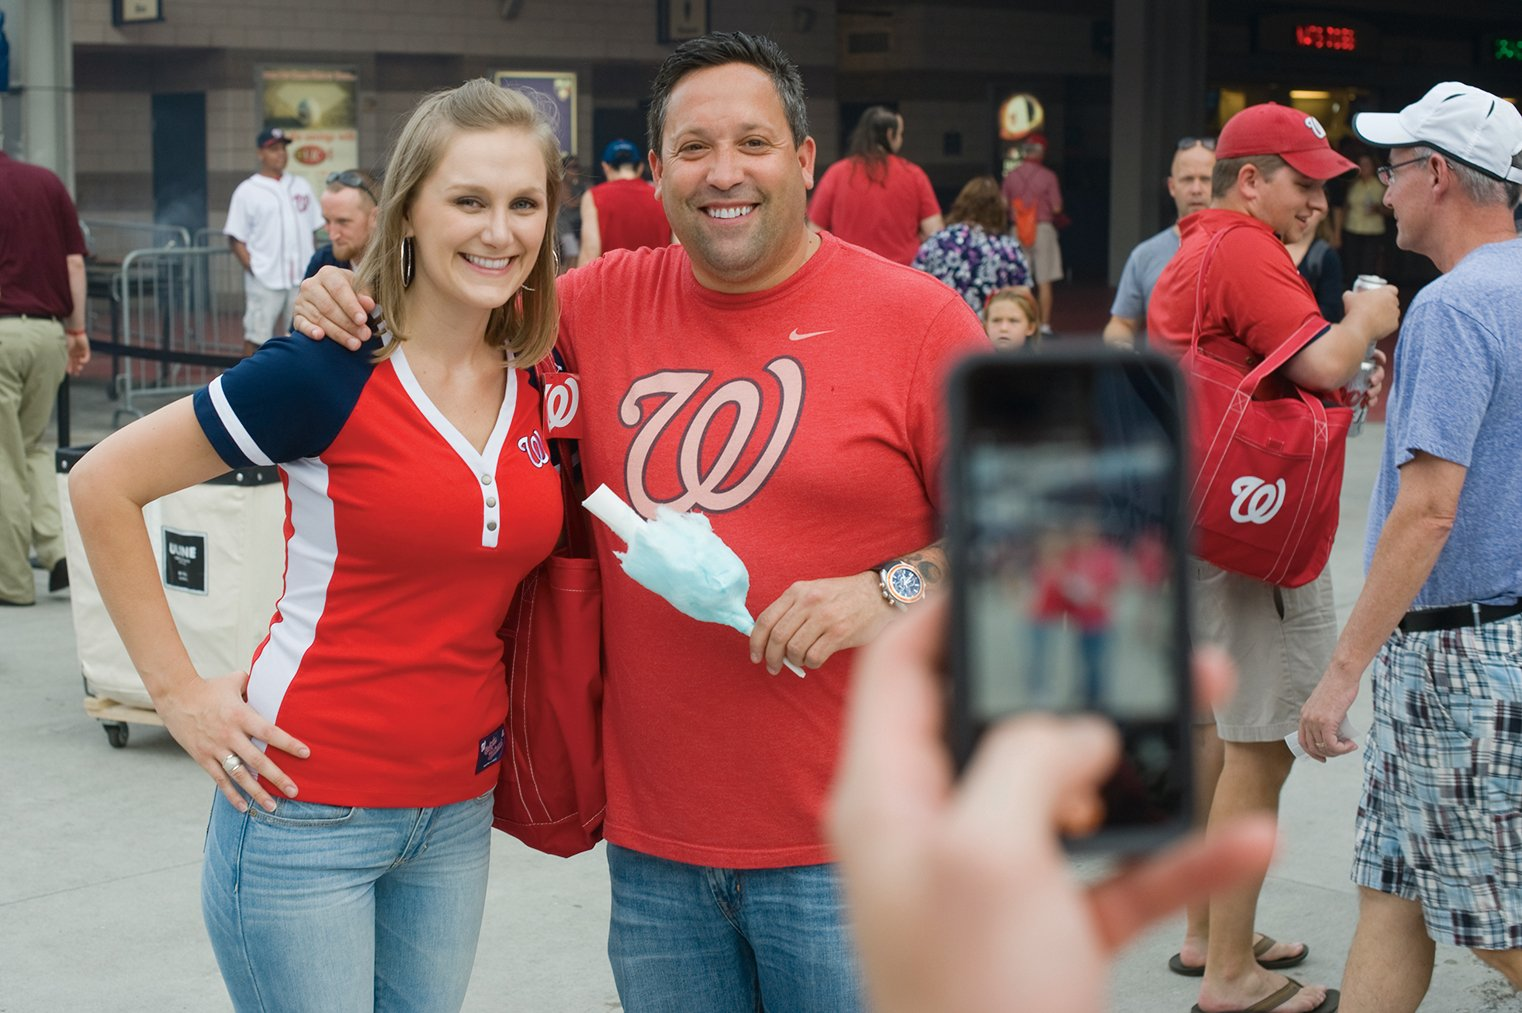 Fans swarmed Mike Isabella at his restaurants and in public, and he extended his brand from upscale sit-downs to quick-grab stands at airports and Nats Park. Photograph by Louie Palu/ZUMA Press.